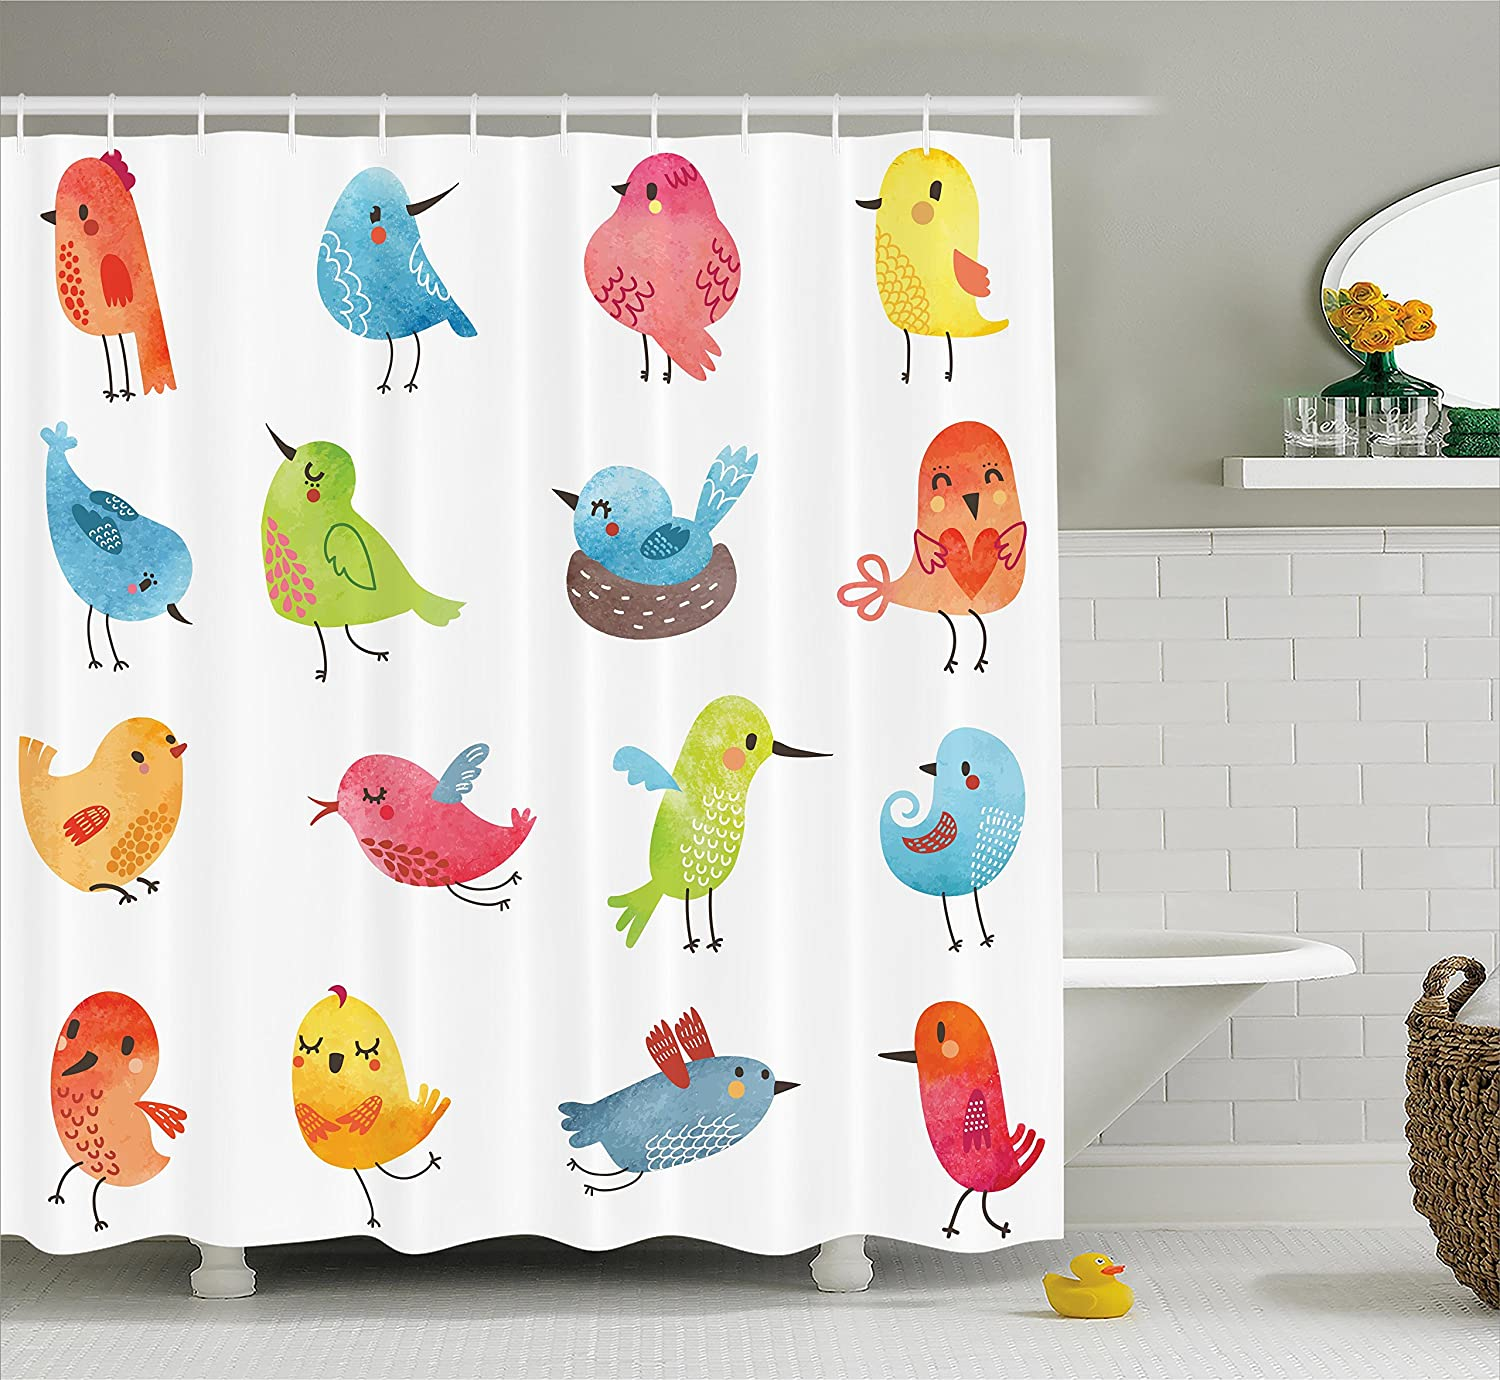 Ambesonne Animal Shower Curtain Colorful Cute Birds Watercolor Effect Humor Funny Mascots Paint Brush Art Kids Design Fabric Bathroom Decor Set With Hooks